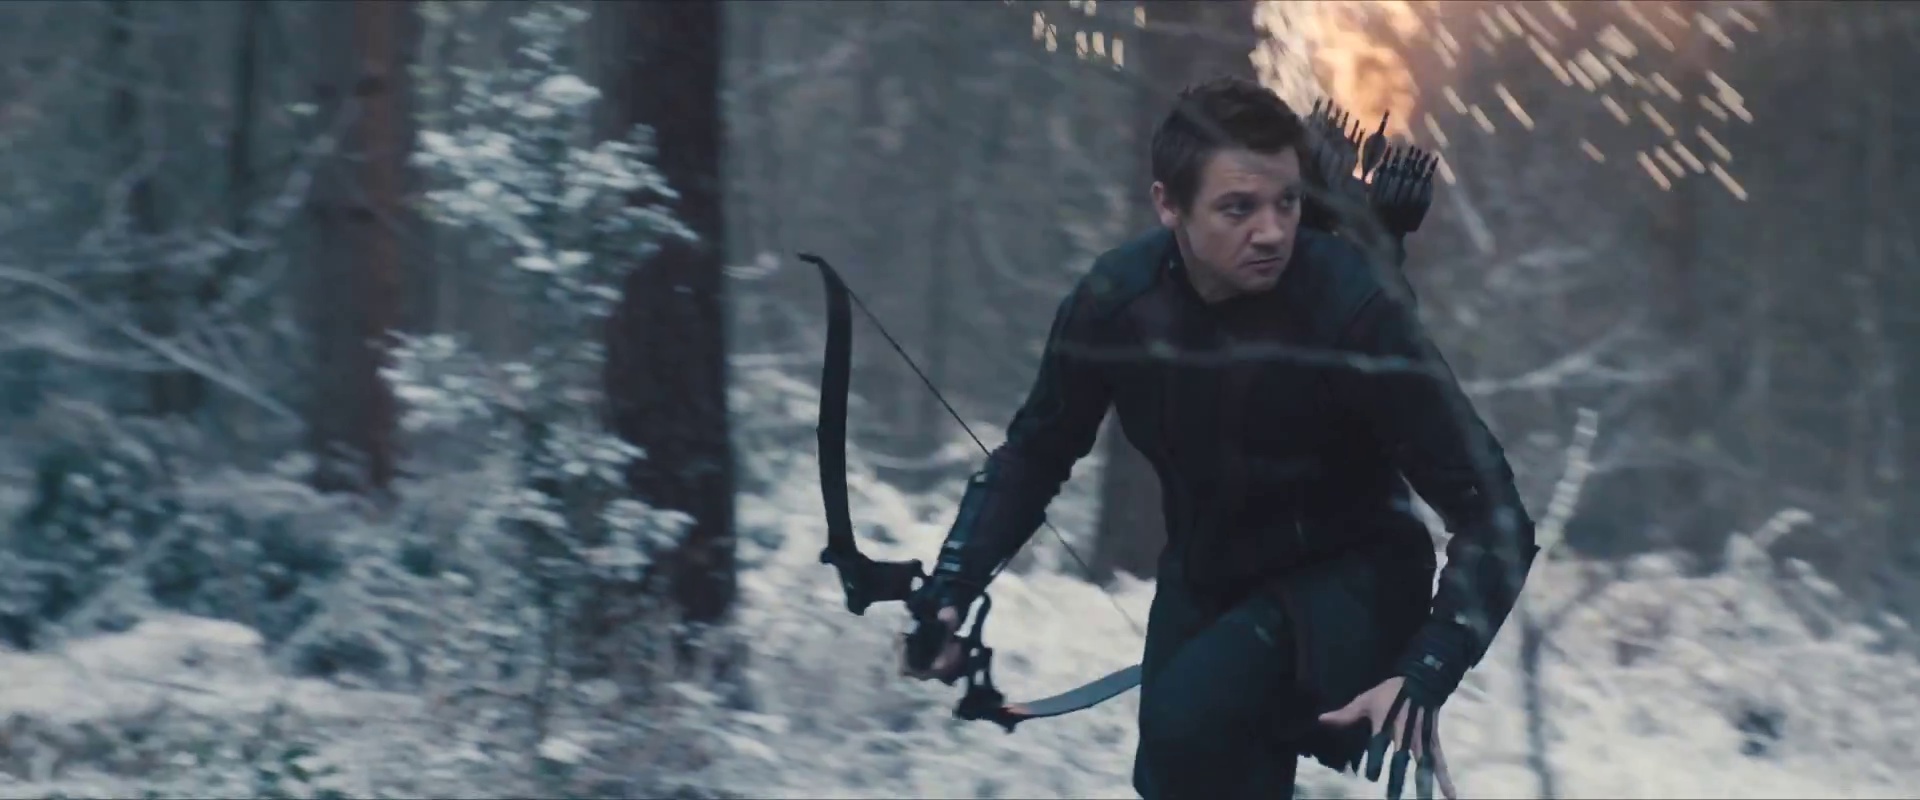 avengers-age-of-ultron-trailer-screengrab-23-jeremy-renner.png